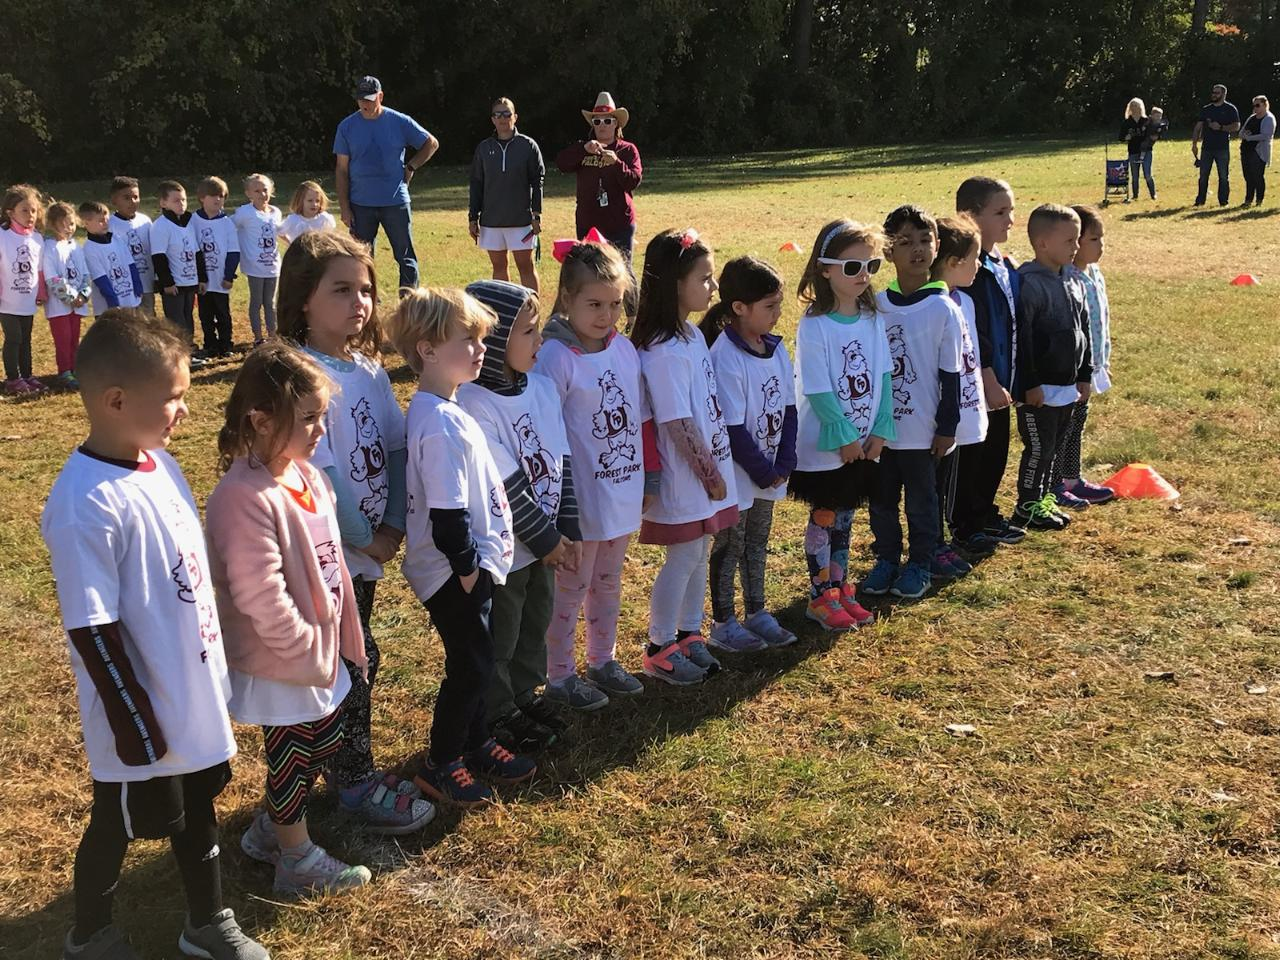 students line up in their T shirt for start of fun run